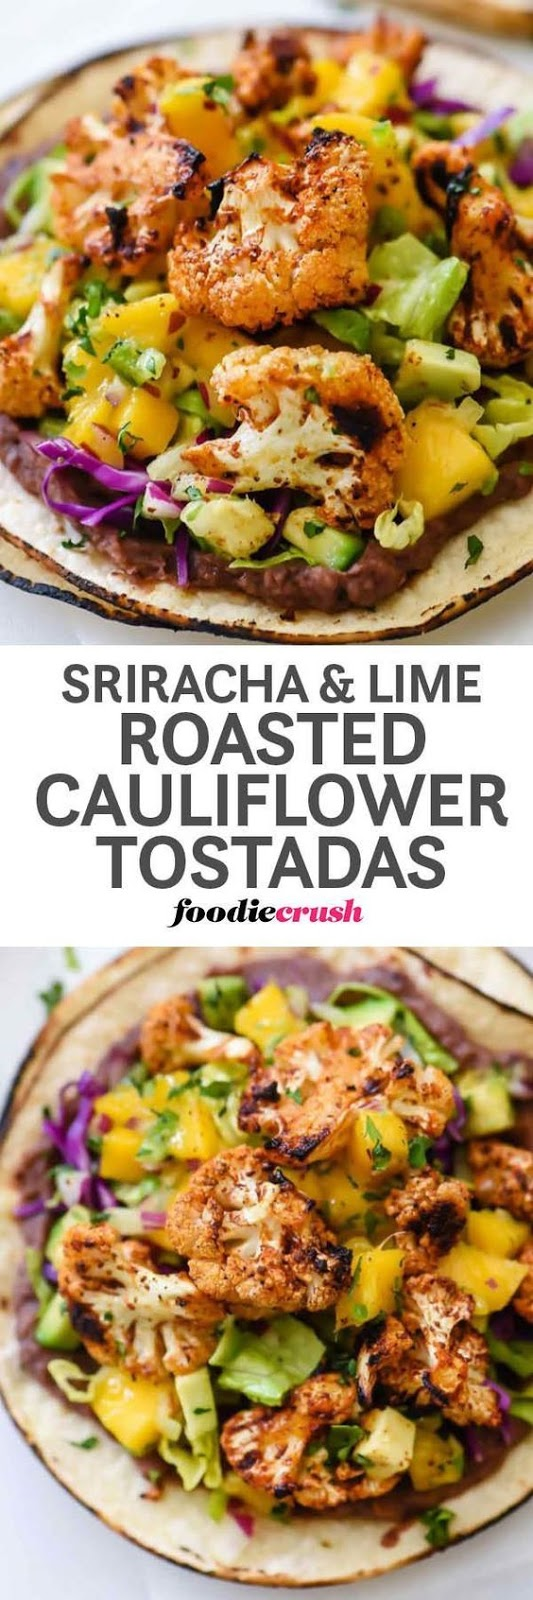 Sriracha and Lime Roasted Cauliflower Tostadas